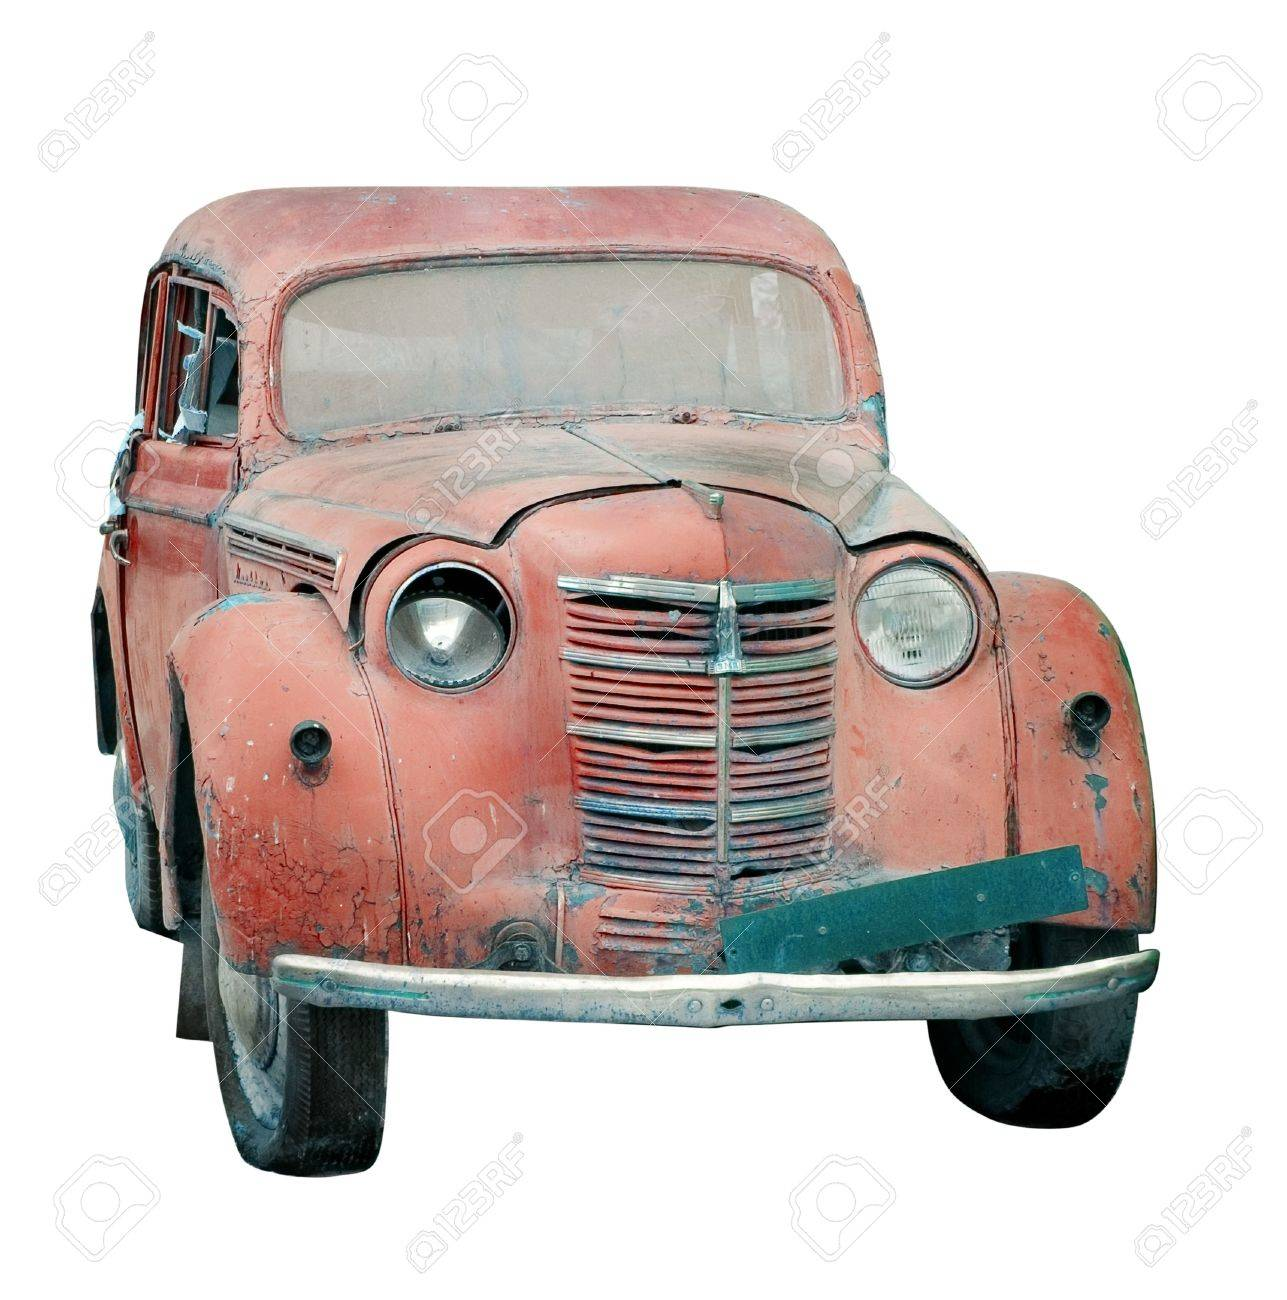 Rusty old car isolated Stock Photo - 4445956